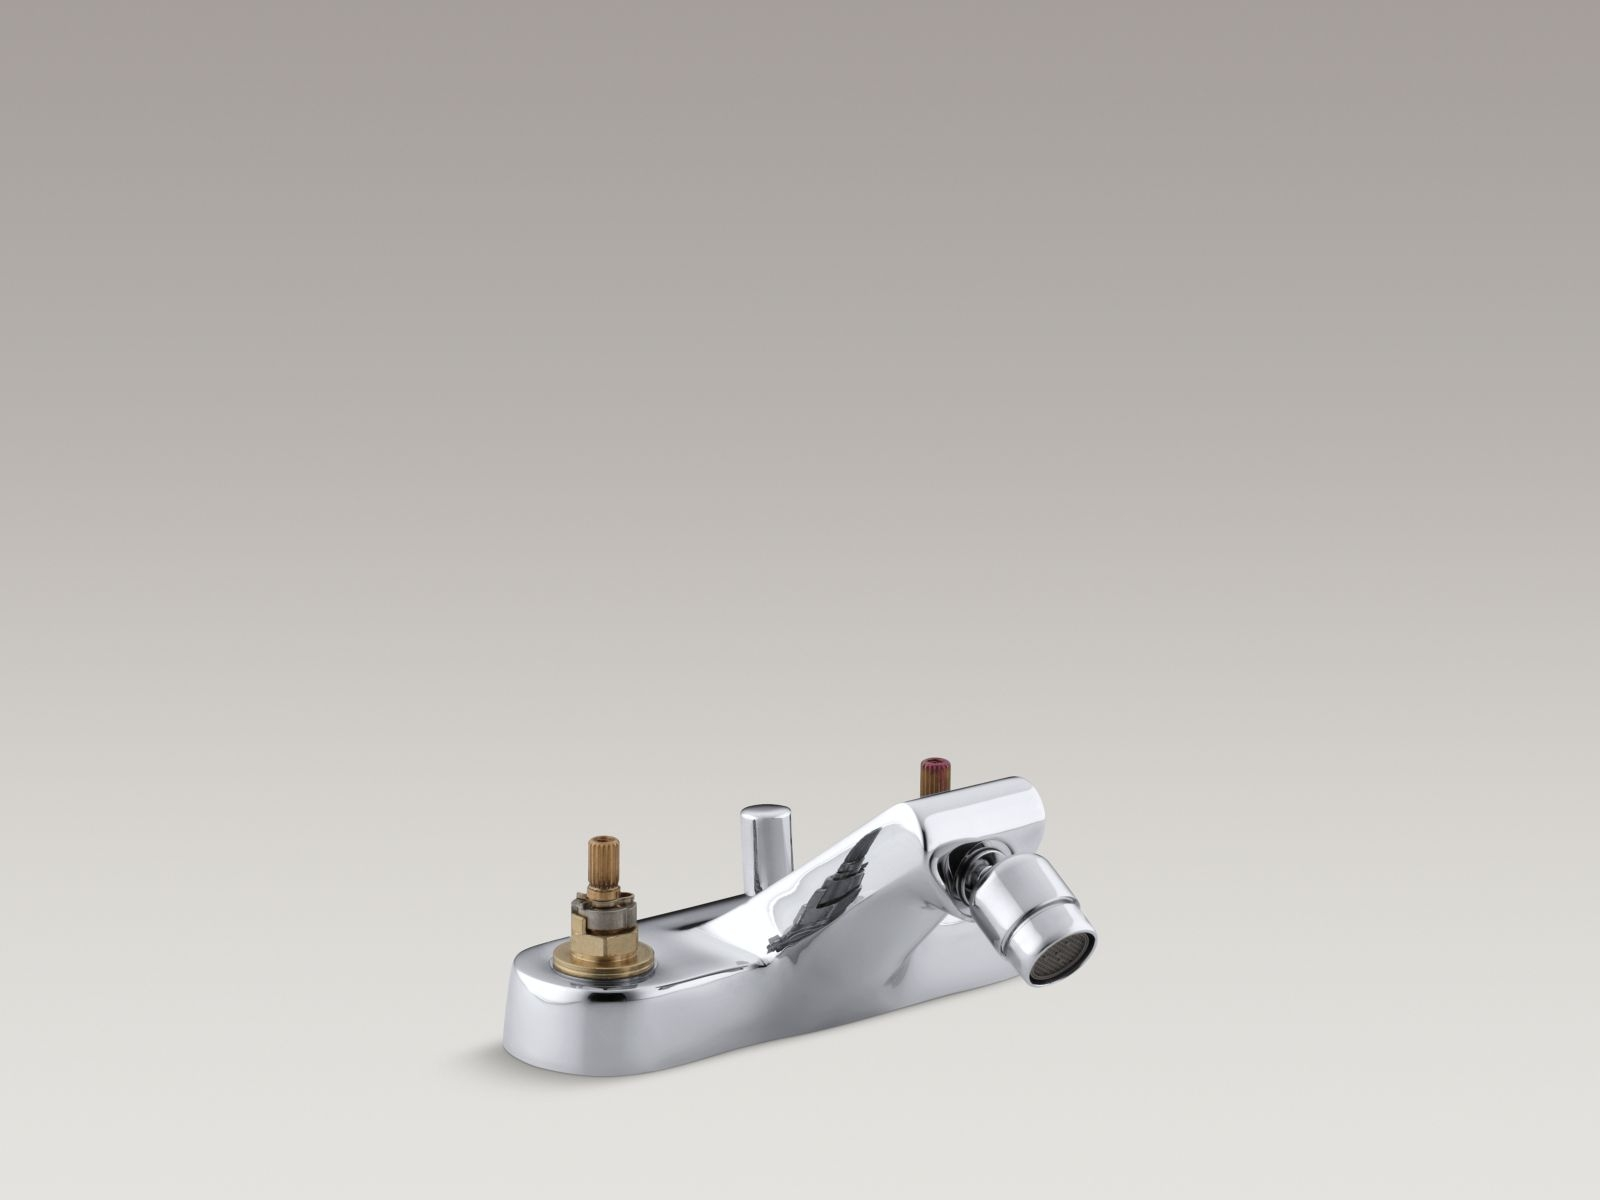 Ideas, standard plumbing supply category results for bidet with regard to measurements 1600 x 1200  .